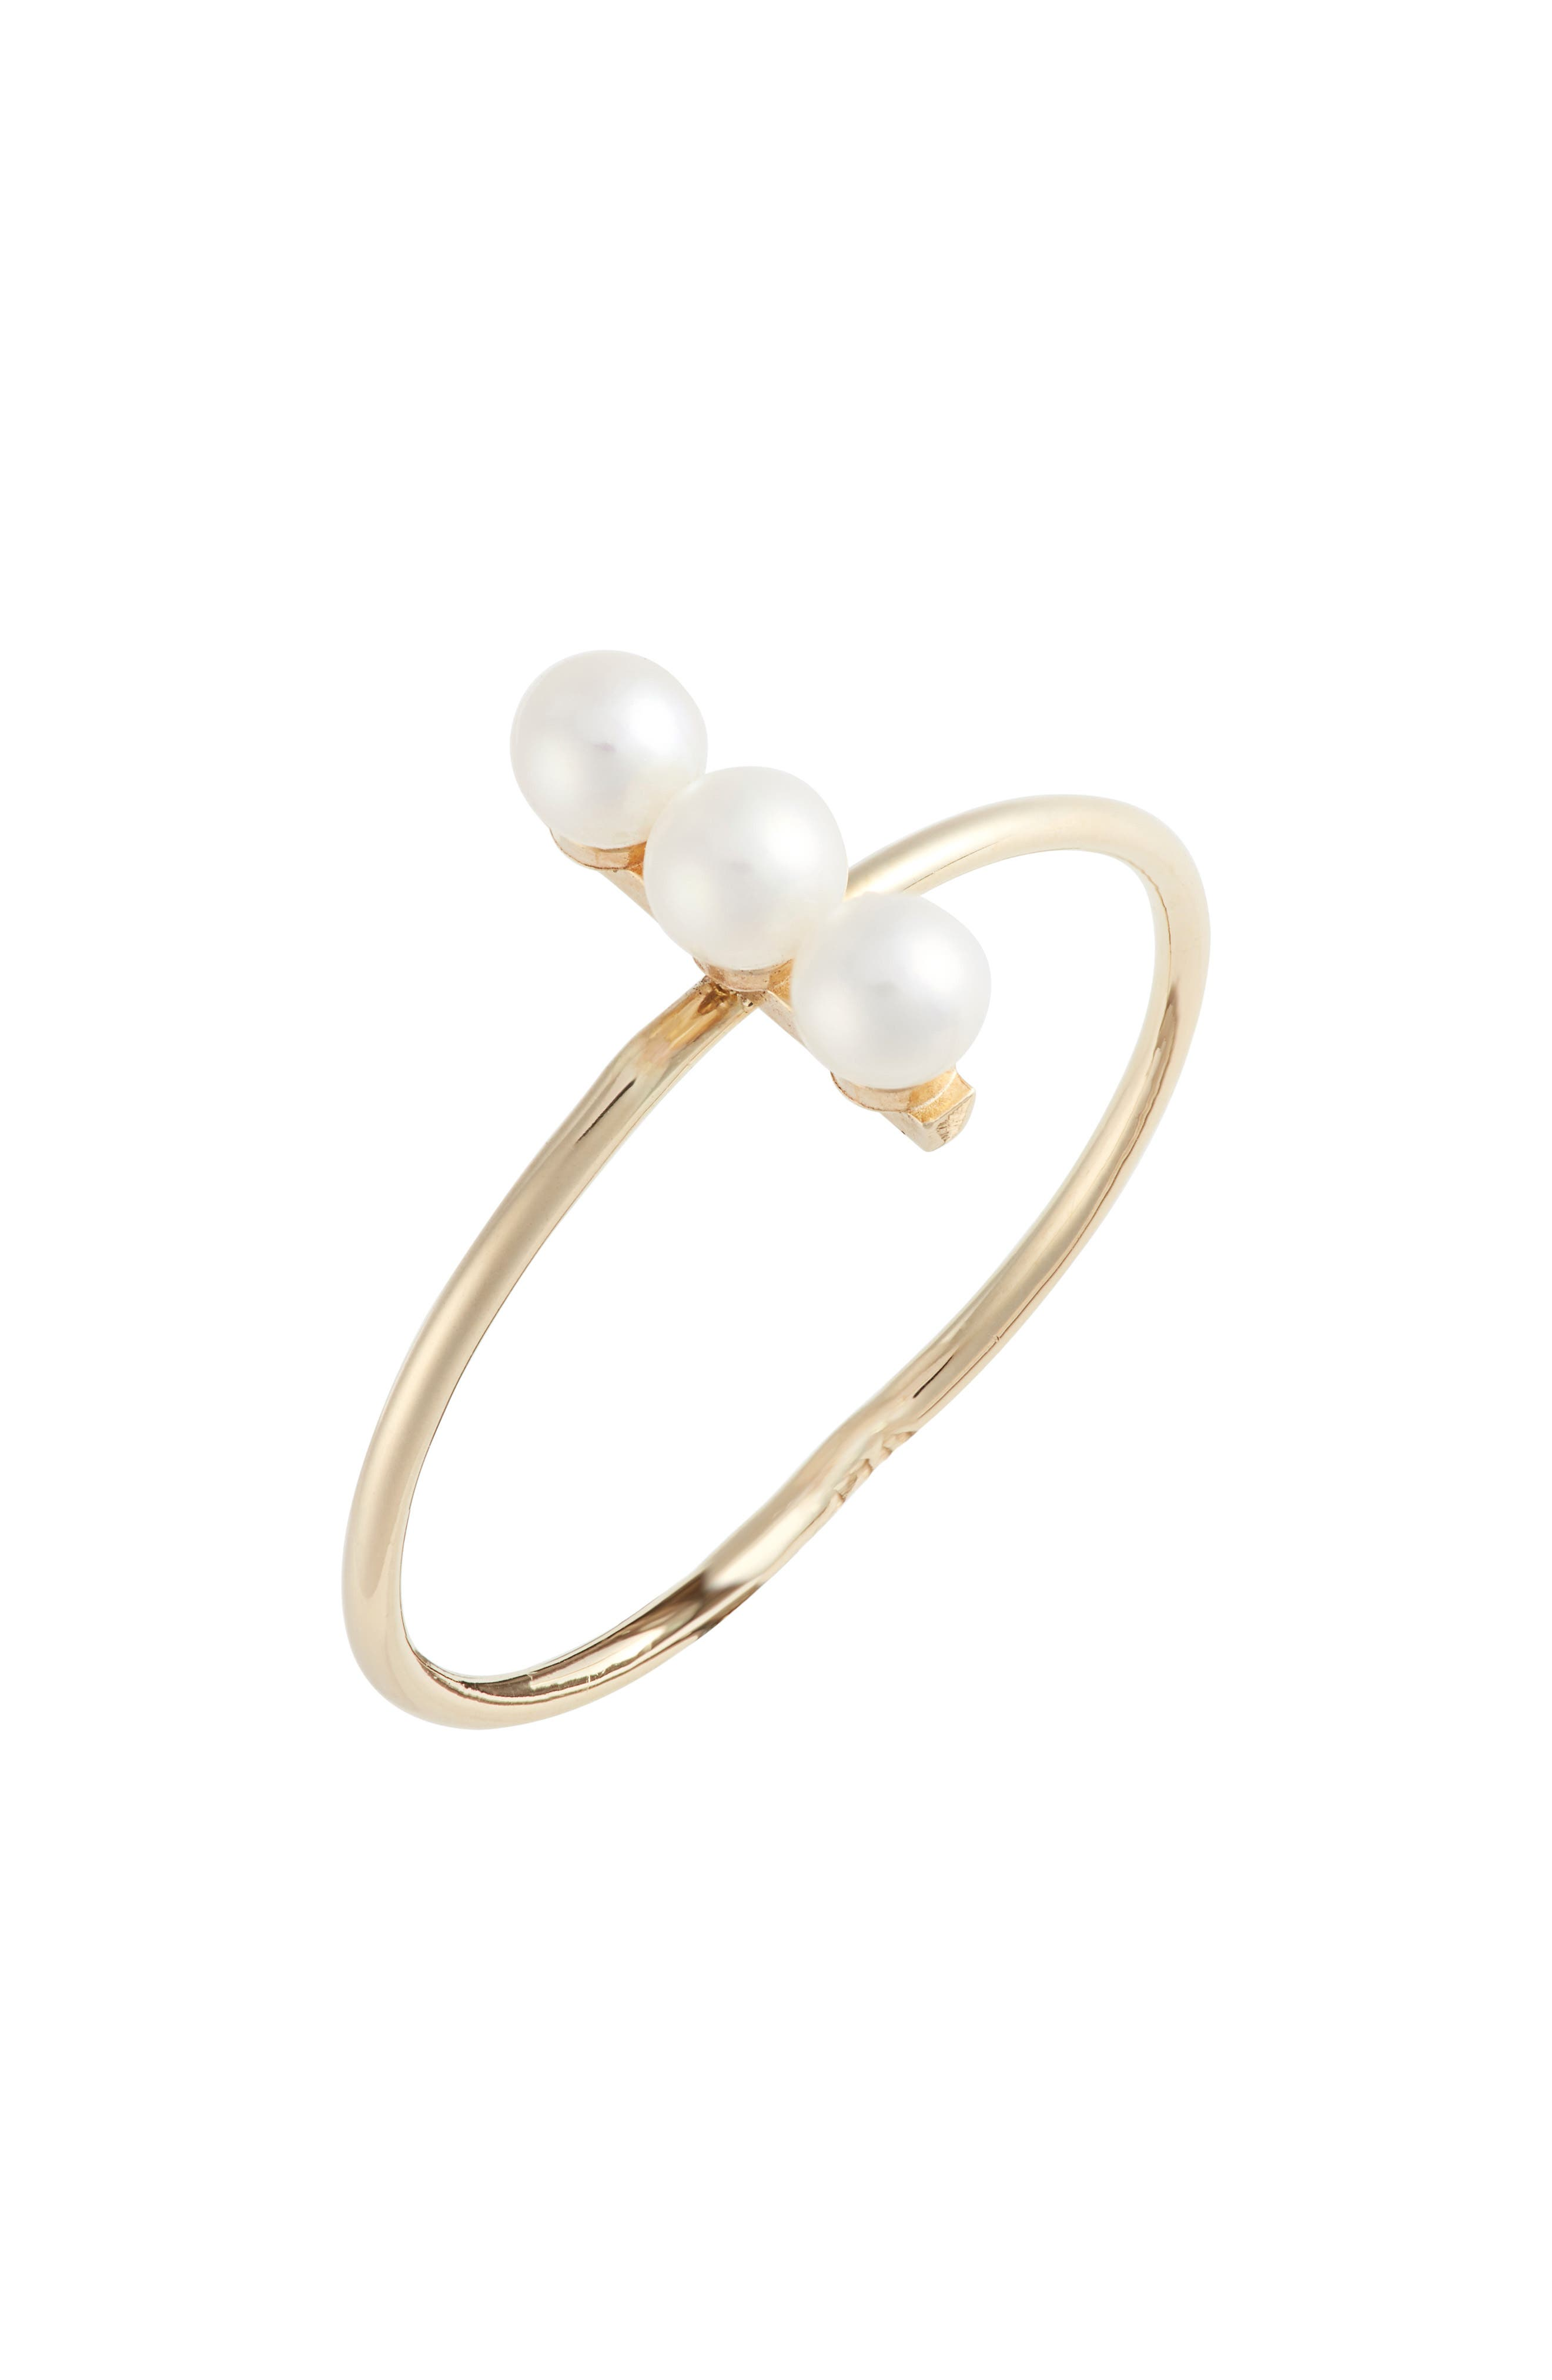 Triple Cultured Pearl Bar Ring,                         Main,                         color, YELLOW GOLD/ WHITE PEARL